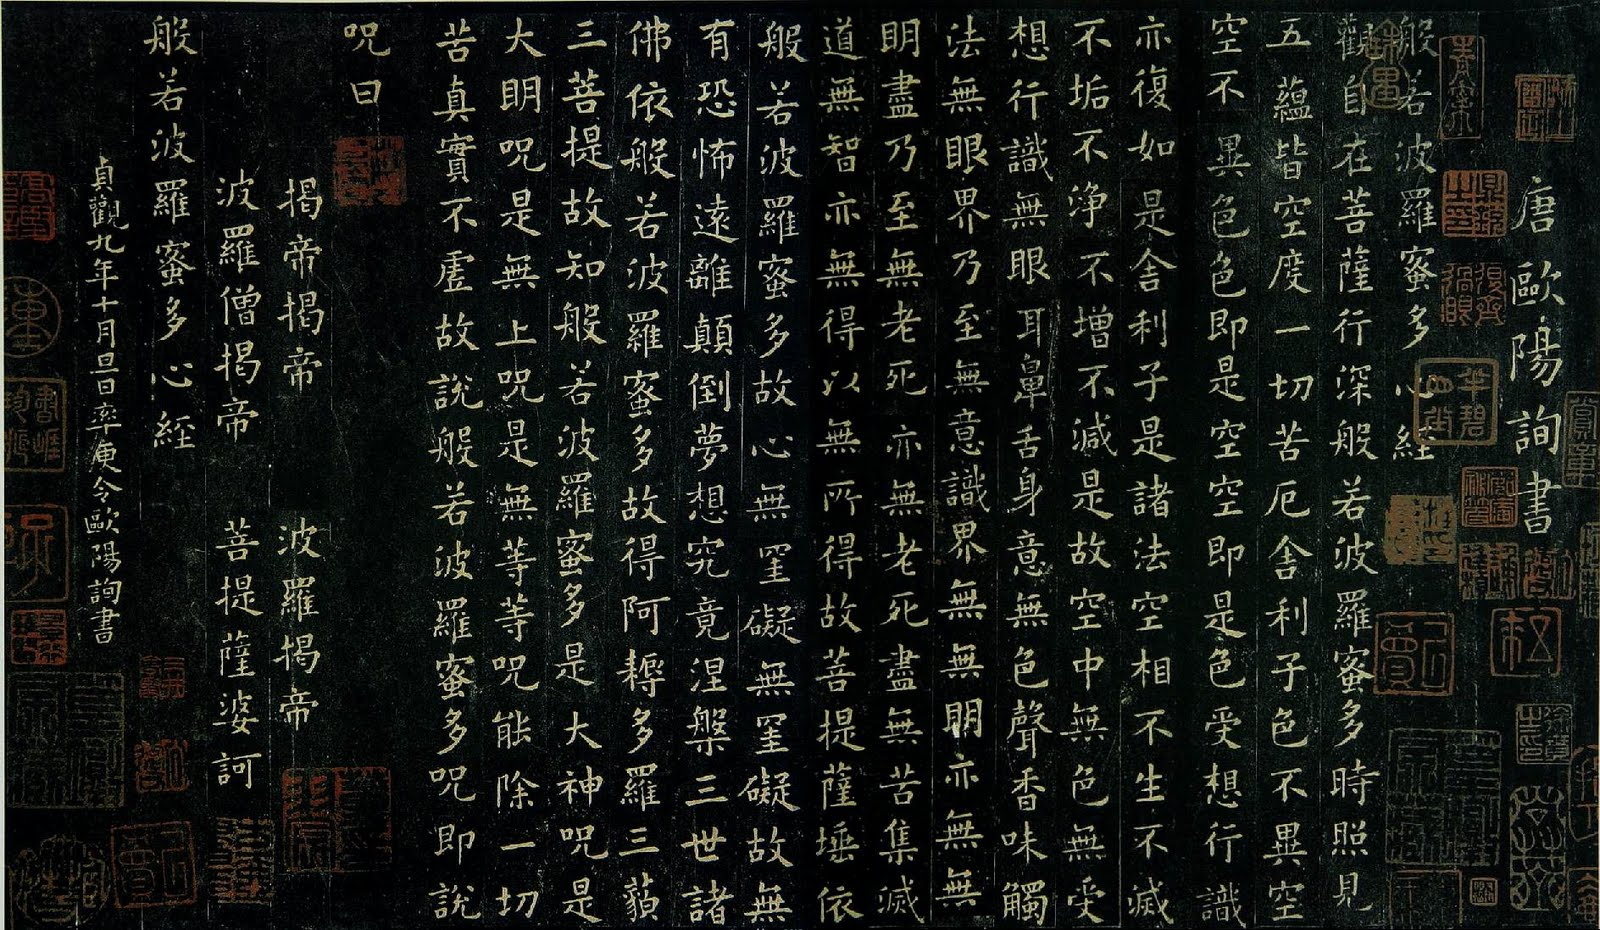 Tang Heart Sutra